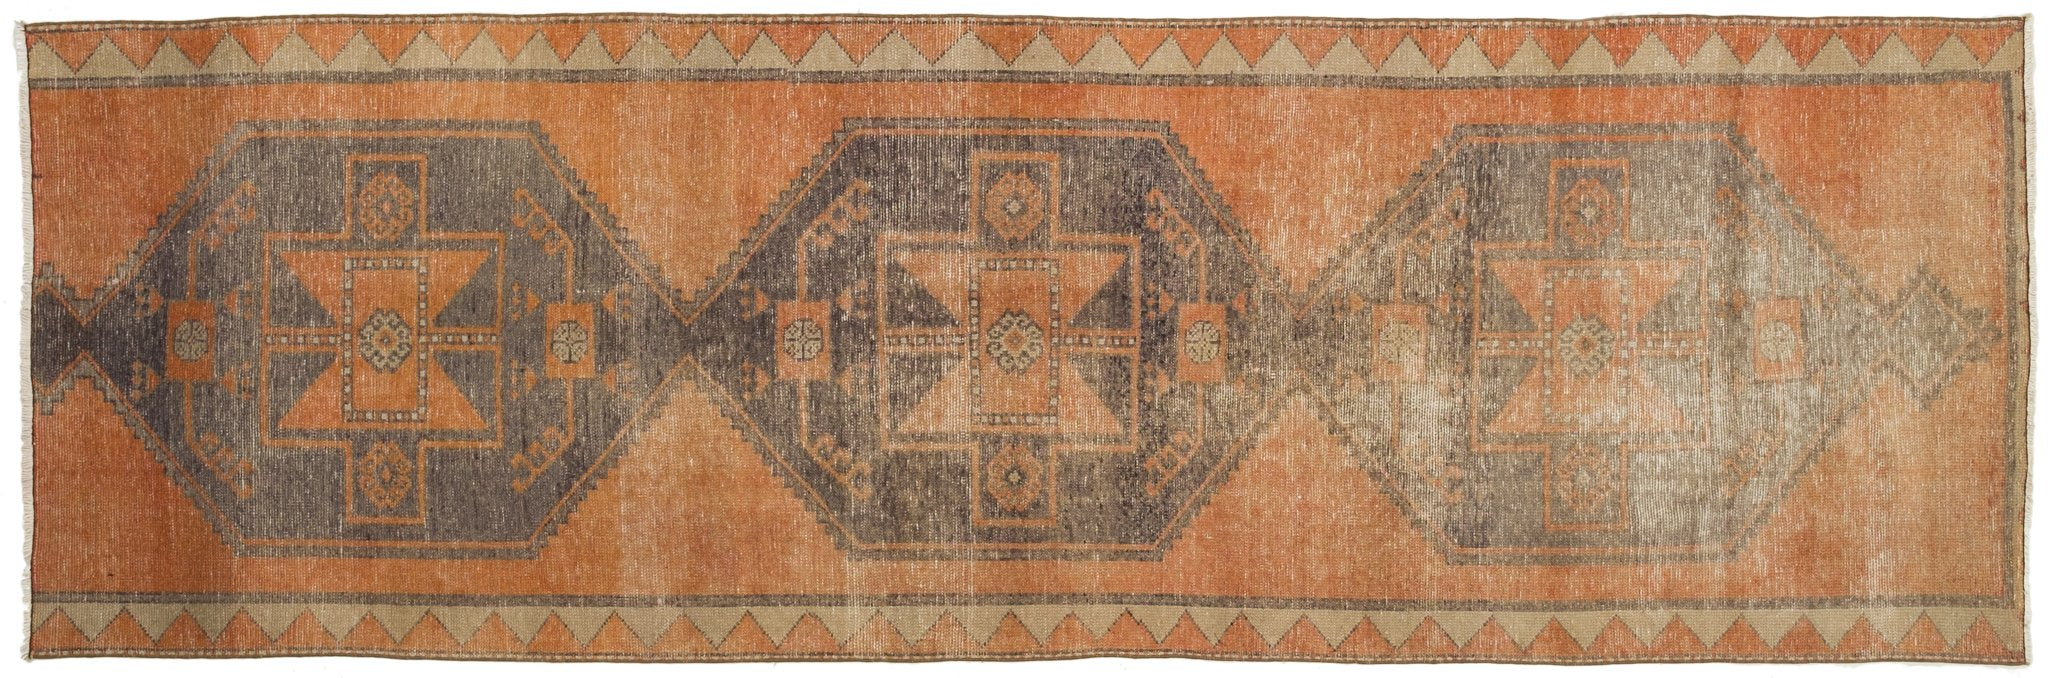 Vintage Turkish Runner Rug Tanta